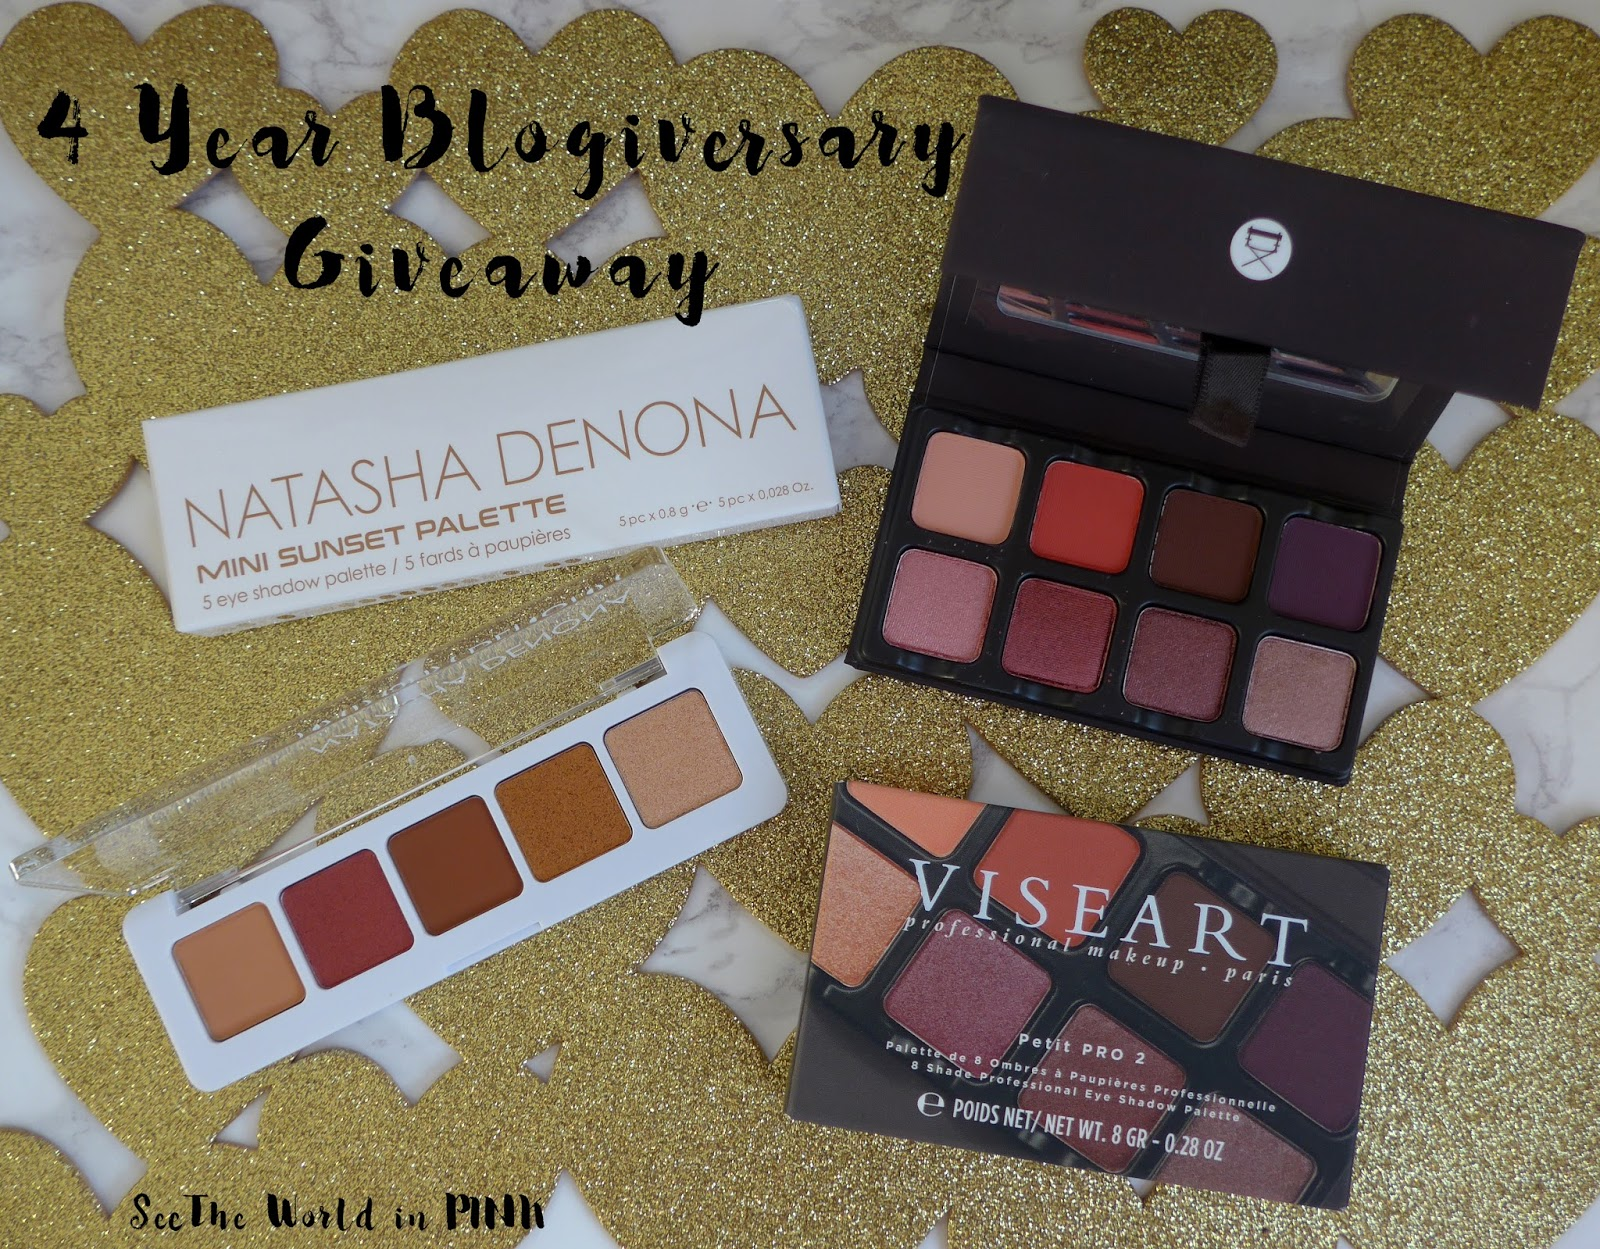 Happy 4 Year Blogiversary! Celebrating With A Giveaway!